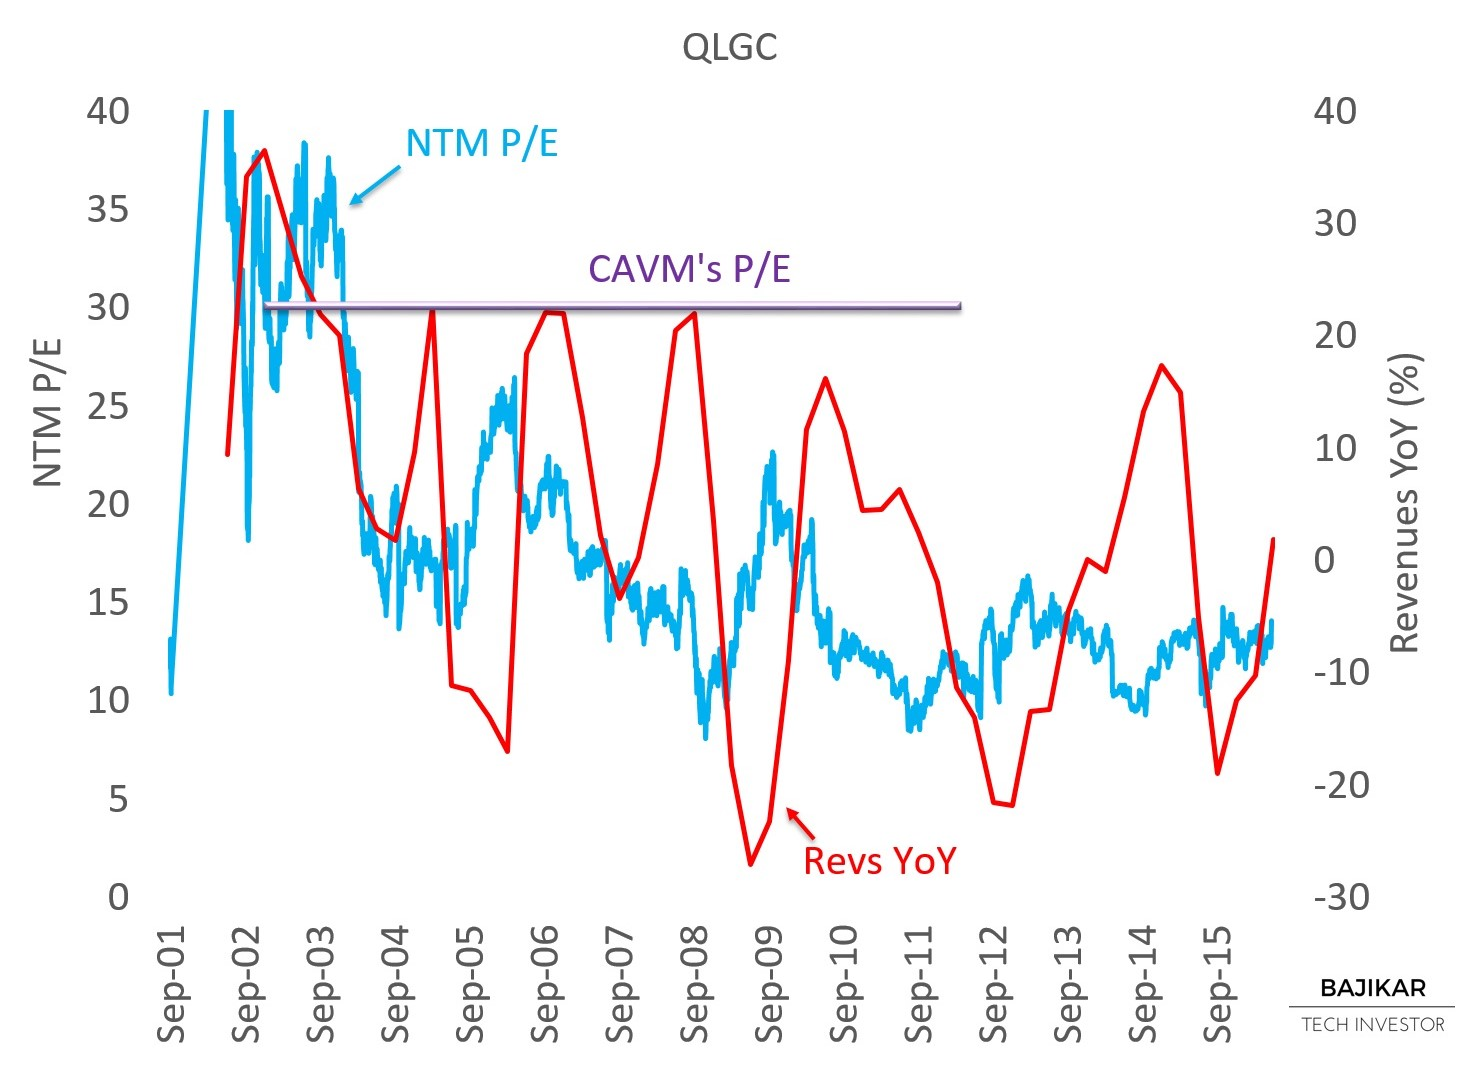 QLGC P/E vs. Revenues YoY